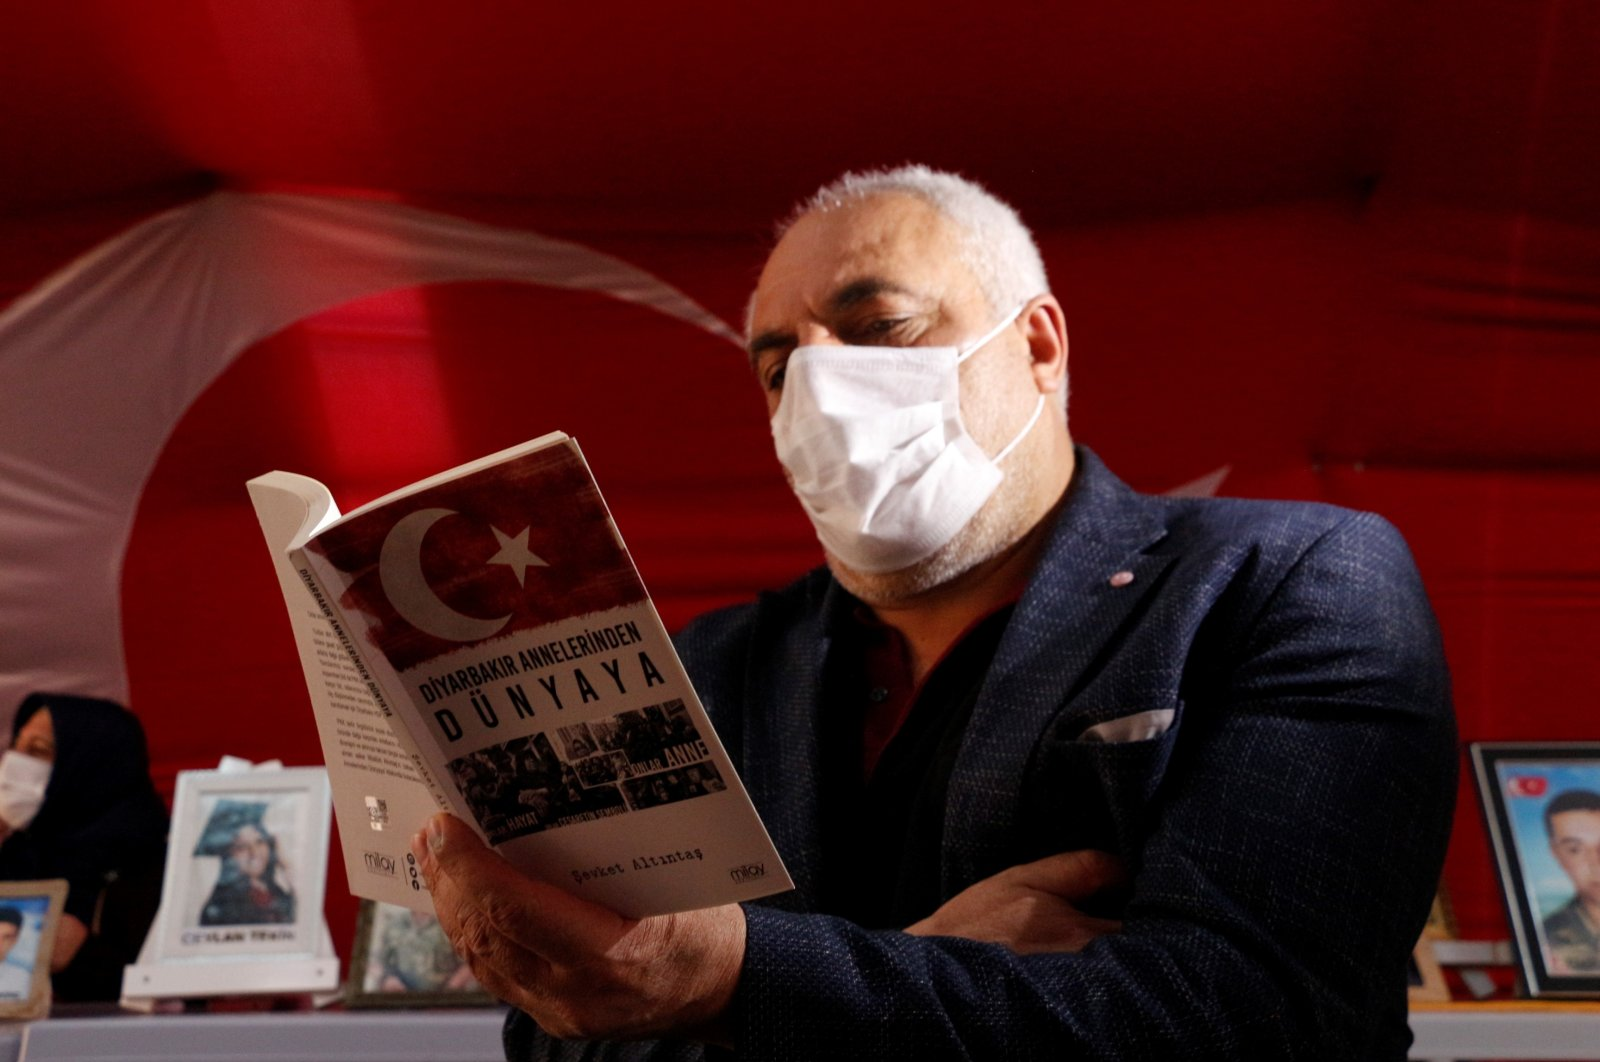 """Father Şevket Altıntaş poses with his book """"From Diyarbakır Mothers to the World"""" in front of the pro-PKK Peoples' Democratic Party's (HDP) headquarters in Diyarbakır, Turkey, Jan. 25, 2021. (DHA Photo)"""